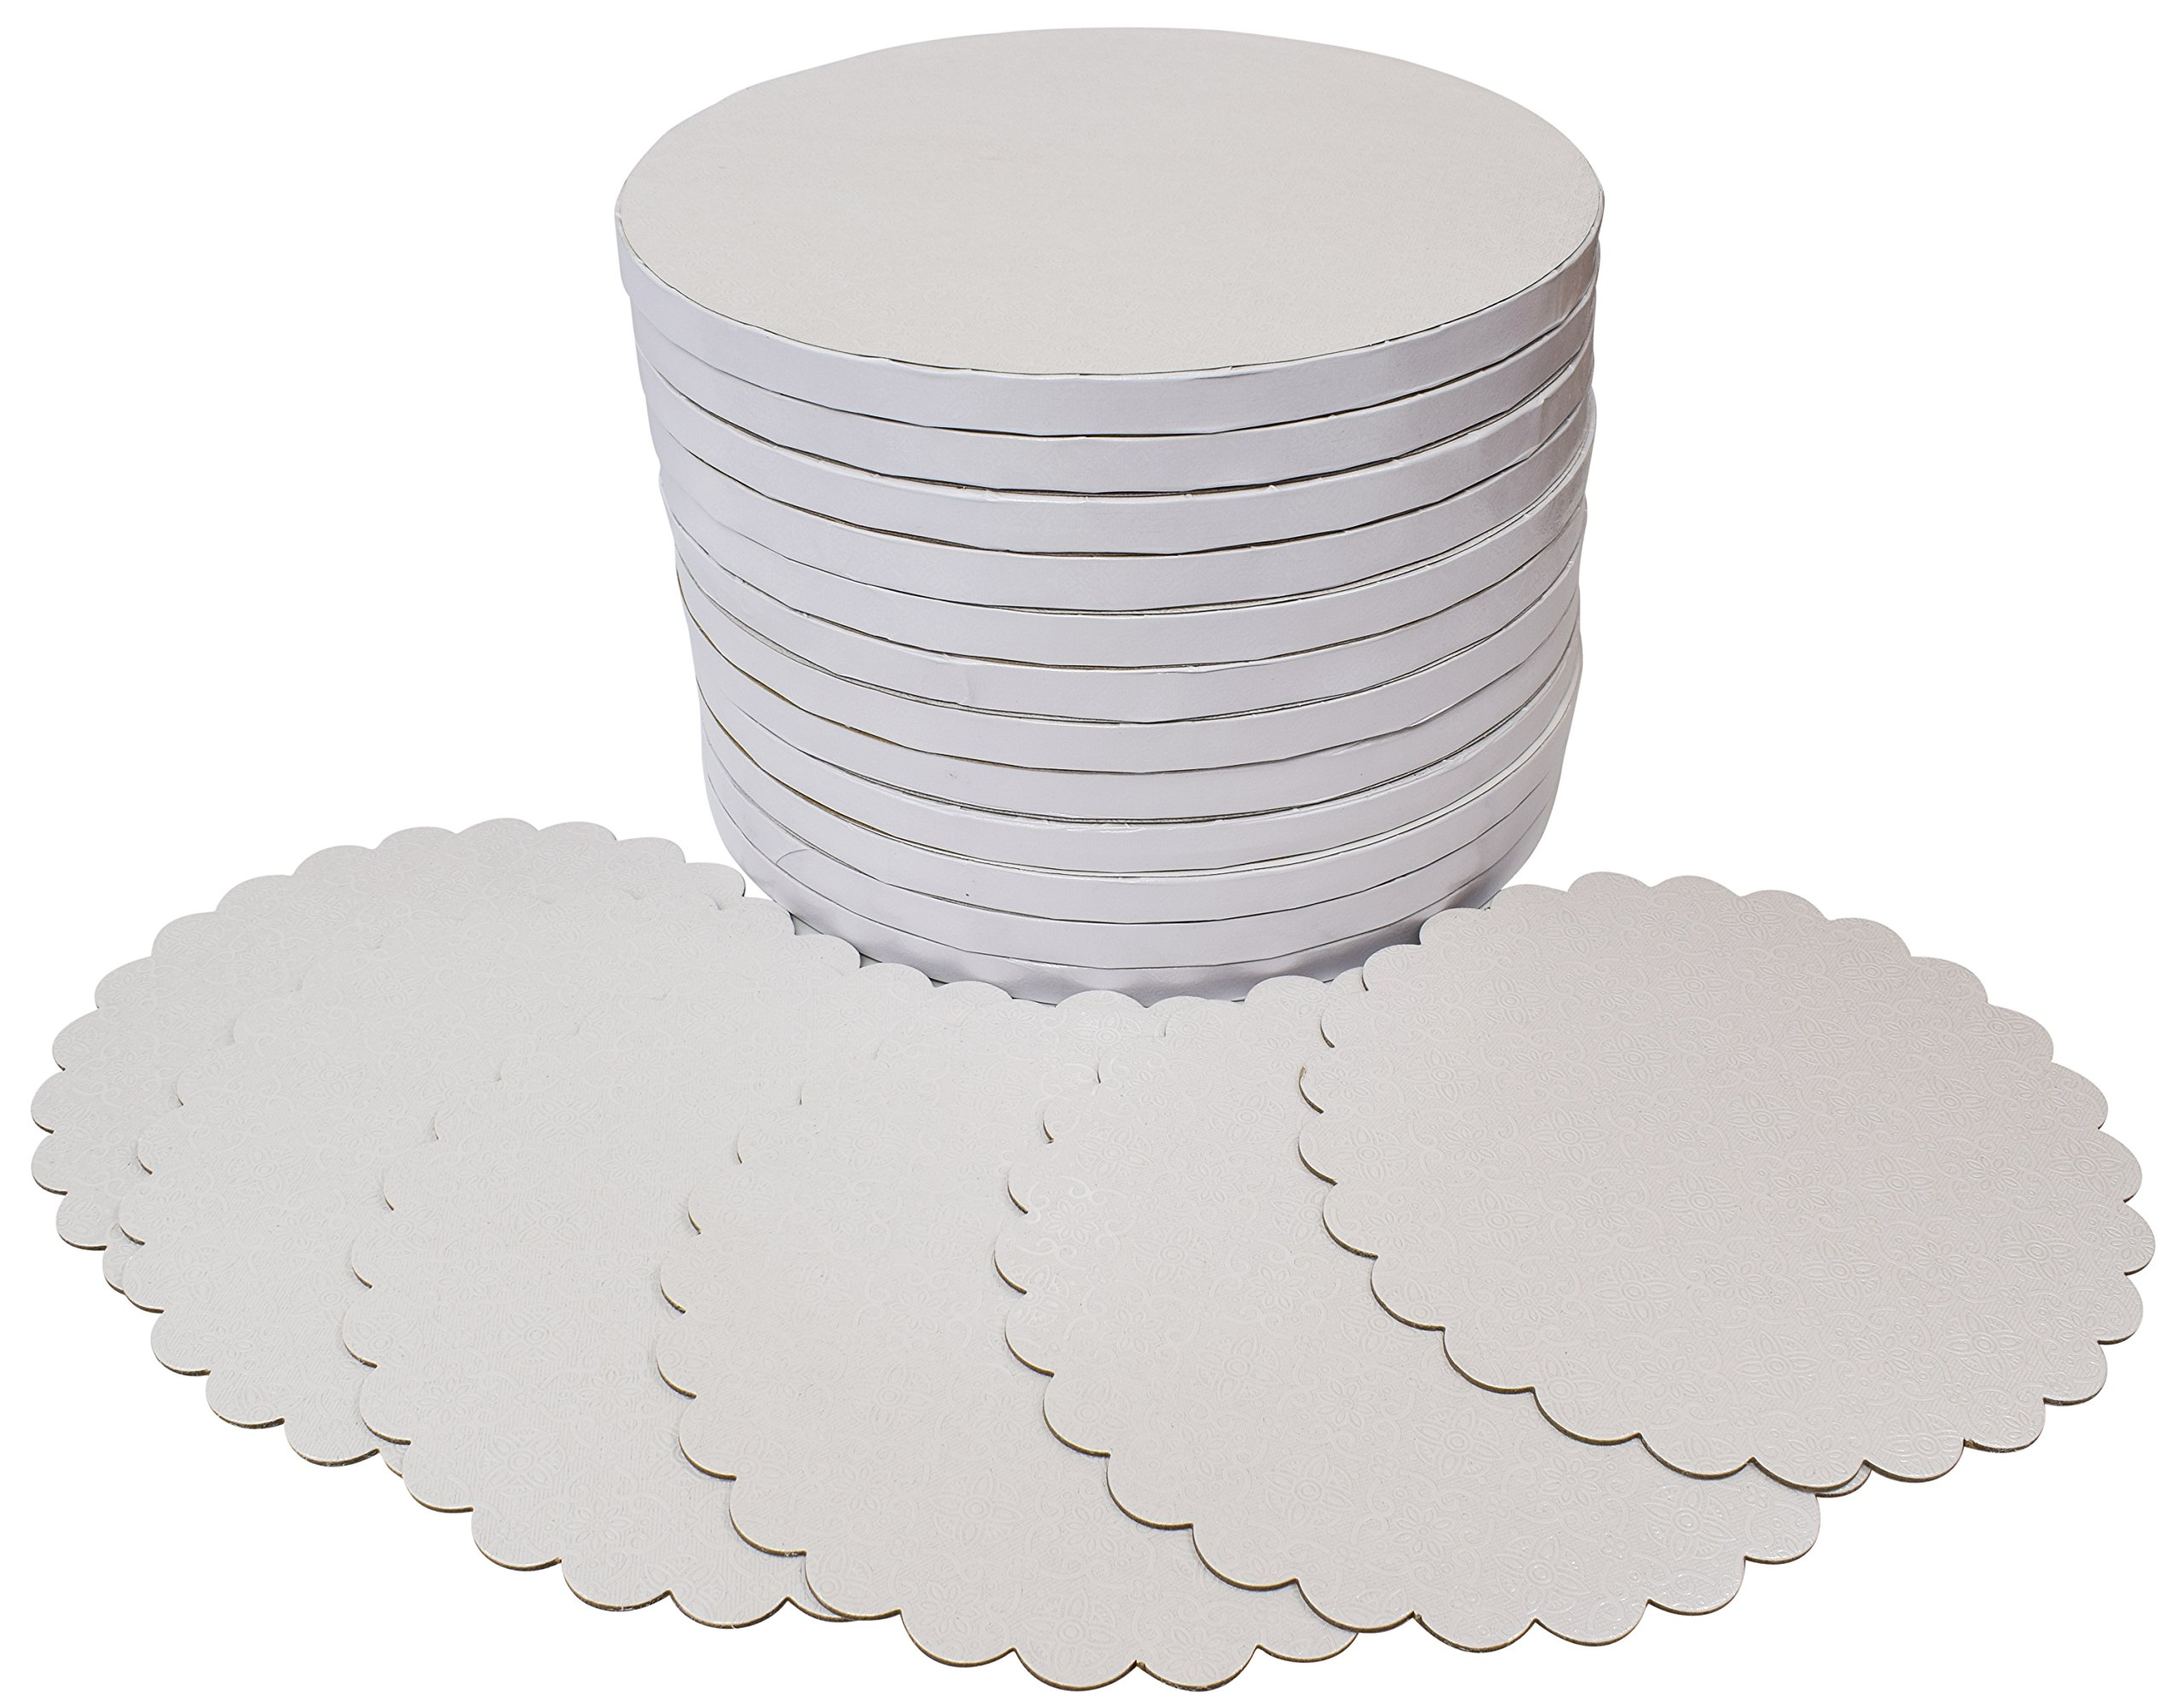 TROLIR 10 Inch White Round Cake Drums, 12 Pack, Smooth Edge, Sturdy and Greaseproof Boards of 1/2 Inch Thick Corrugated Paper, Covered With PET Film of Flower Pattern, Bonus - 6 Scalloped-Edge Pads